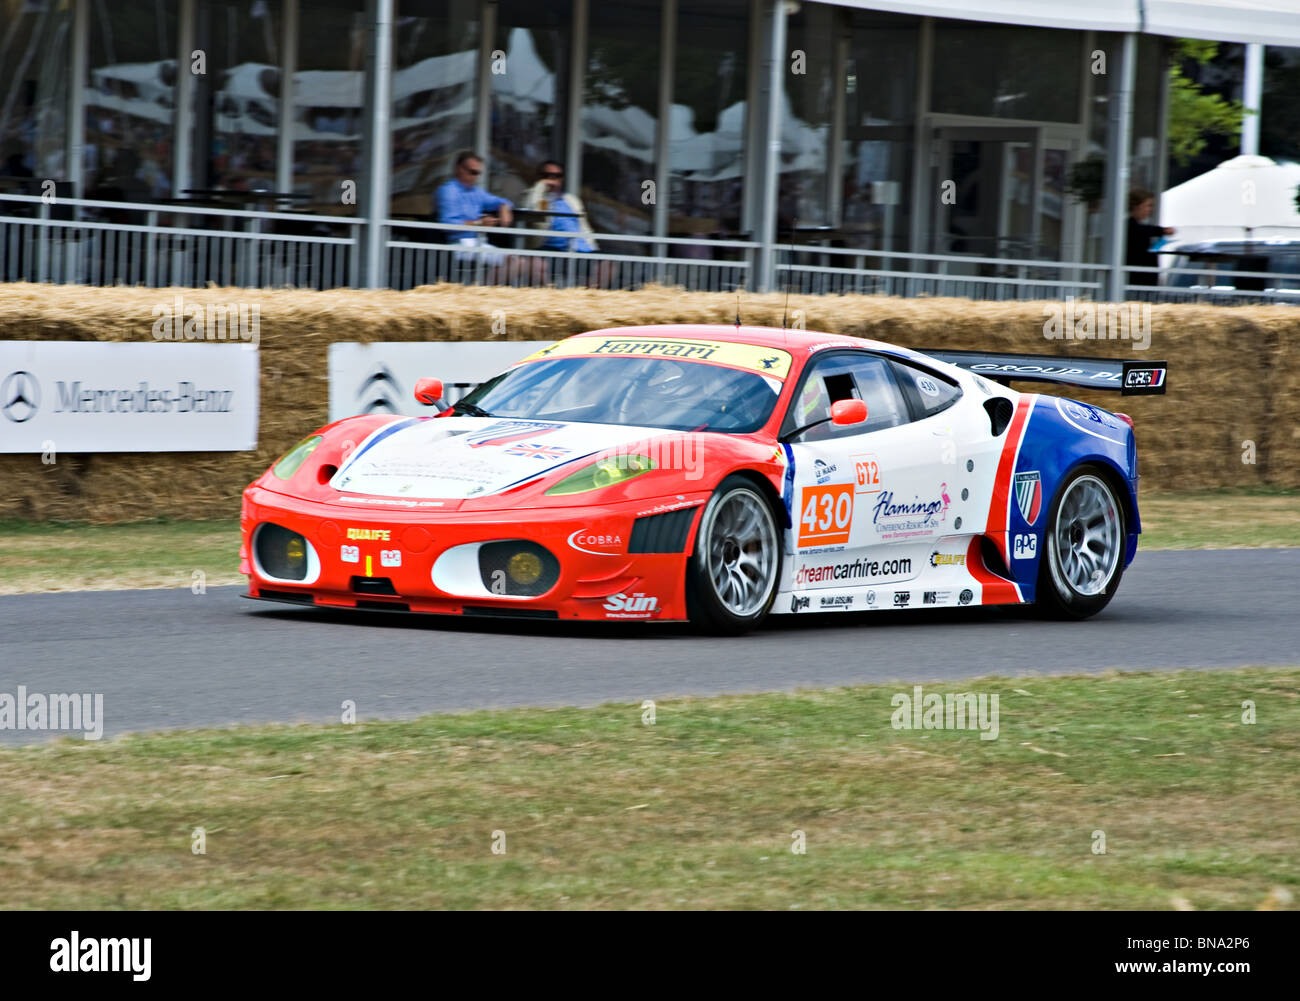 Good Ferrari 430 GT2 Sports Racing Car At Goodwood Festival Of Speed West Sussex  England United Kingdom